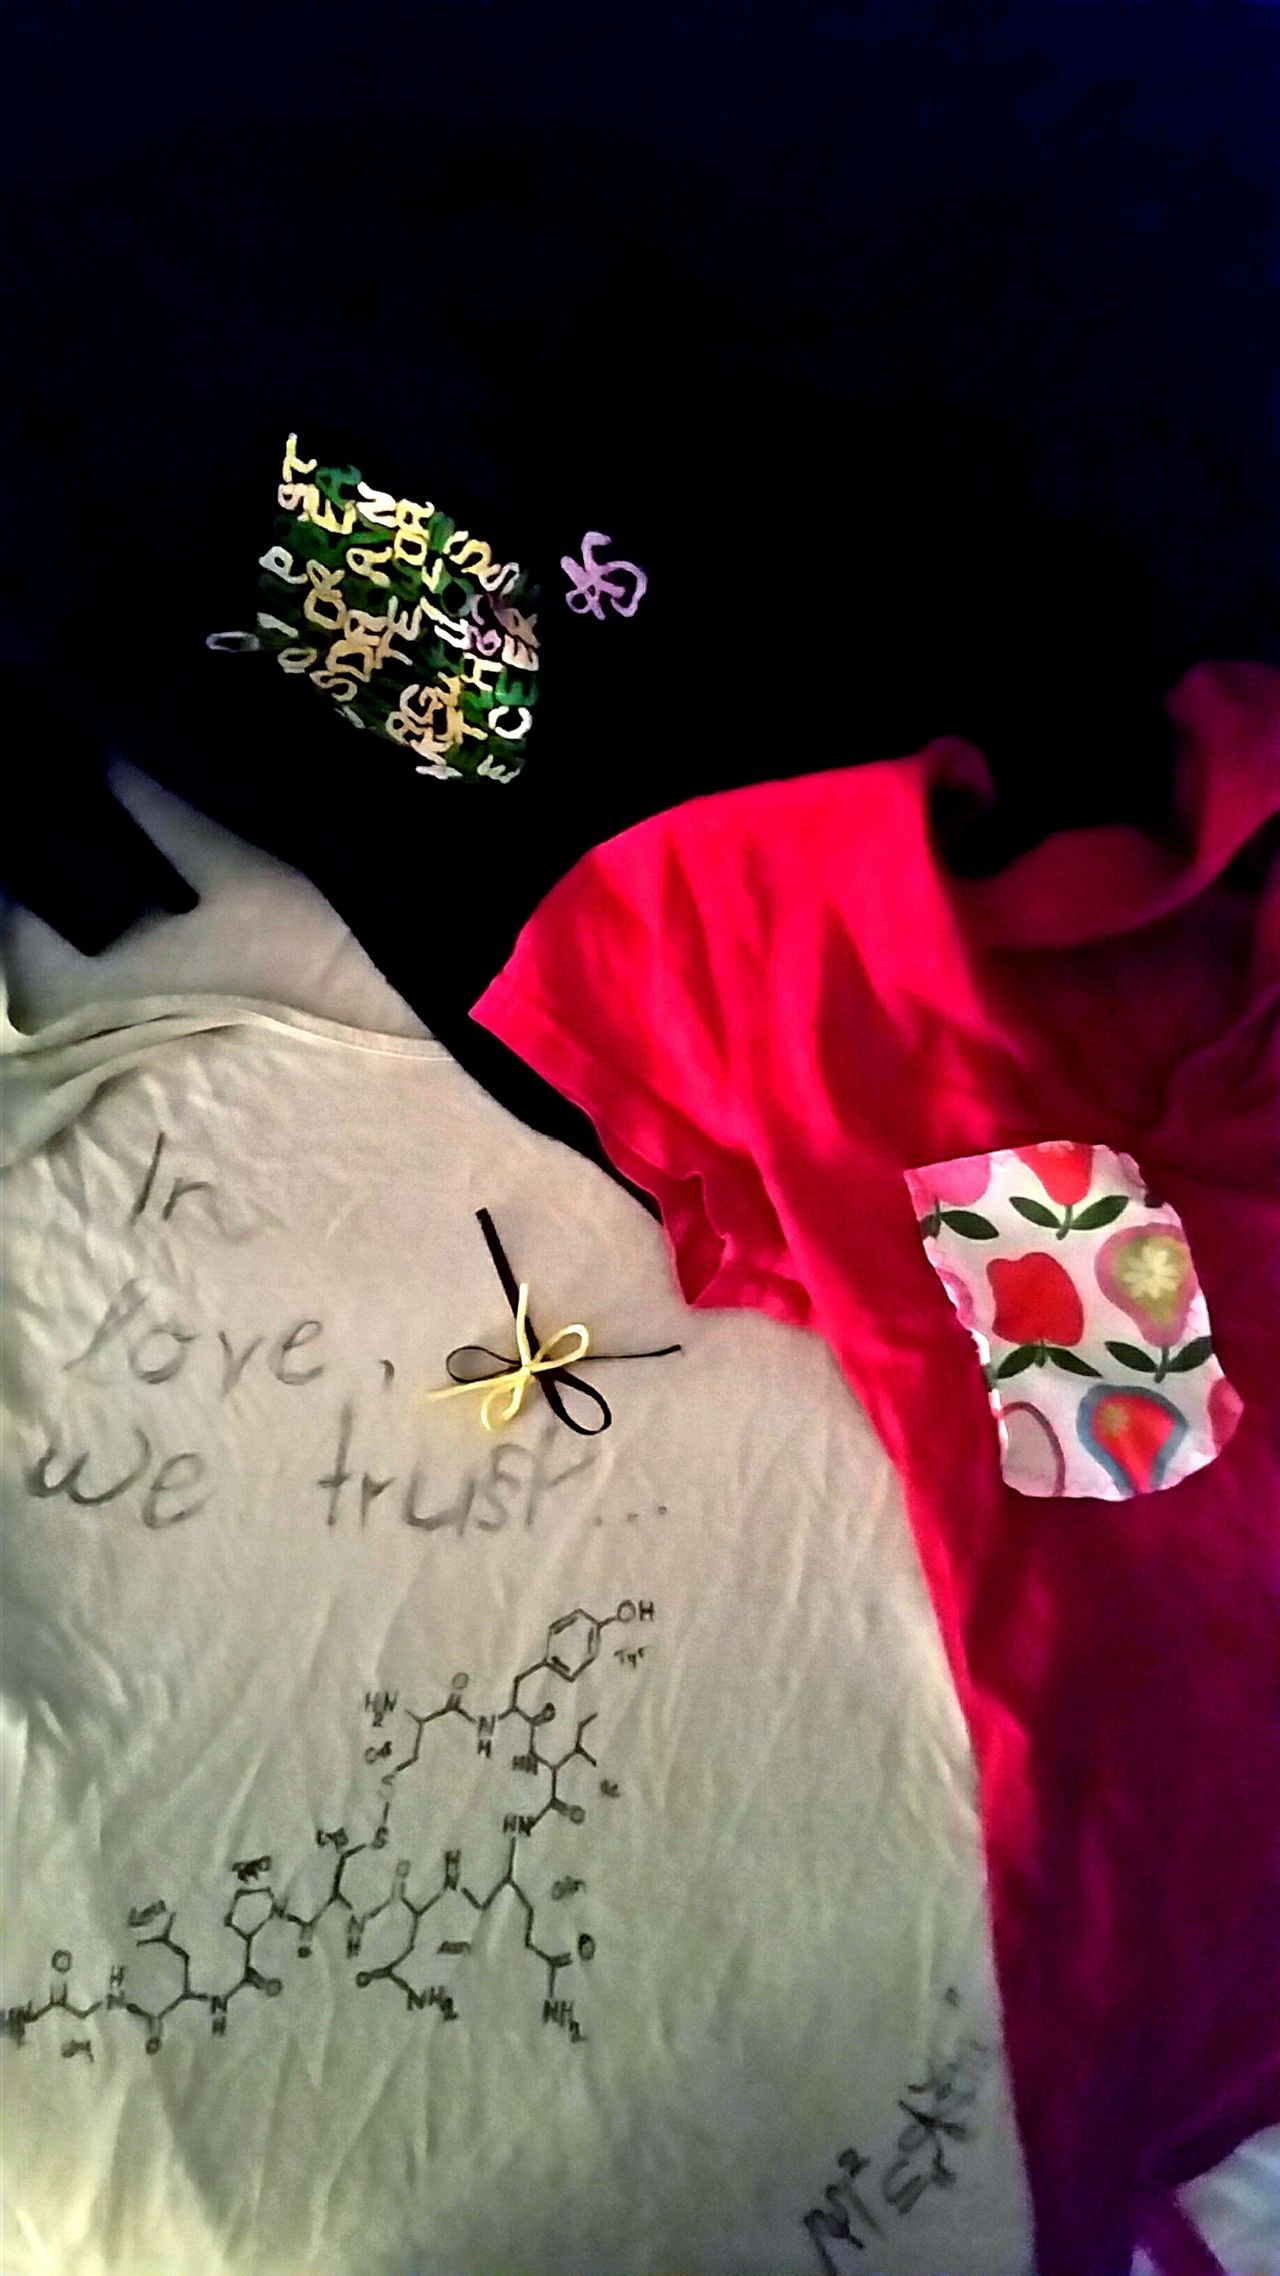 in love - we trust. Oxytocin Art Is My Life Art Photography Creativity Fashion Photography Tshirt Designer Instafashion Artphoto No People Urban Lifestyle Best Shots EyeEm Scienceworld Chemistry Nähen Tail Tailor Tailored EyeEm Best Shots Zynismus Sarcasm New Talents Love Lovely Tshirt Tshirtcollection